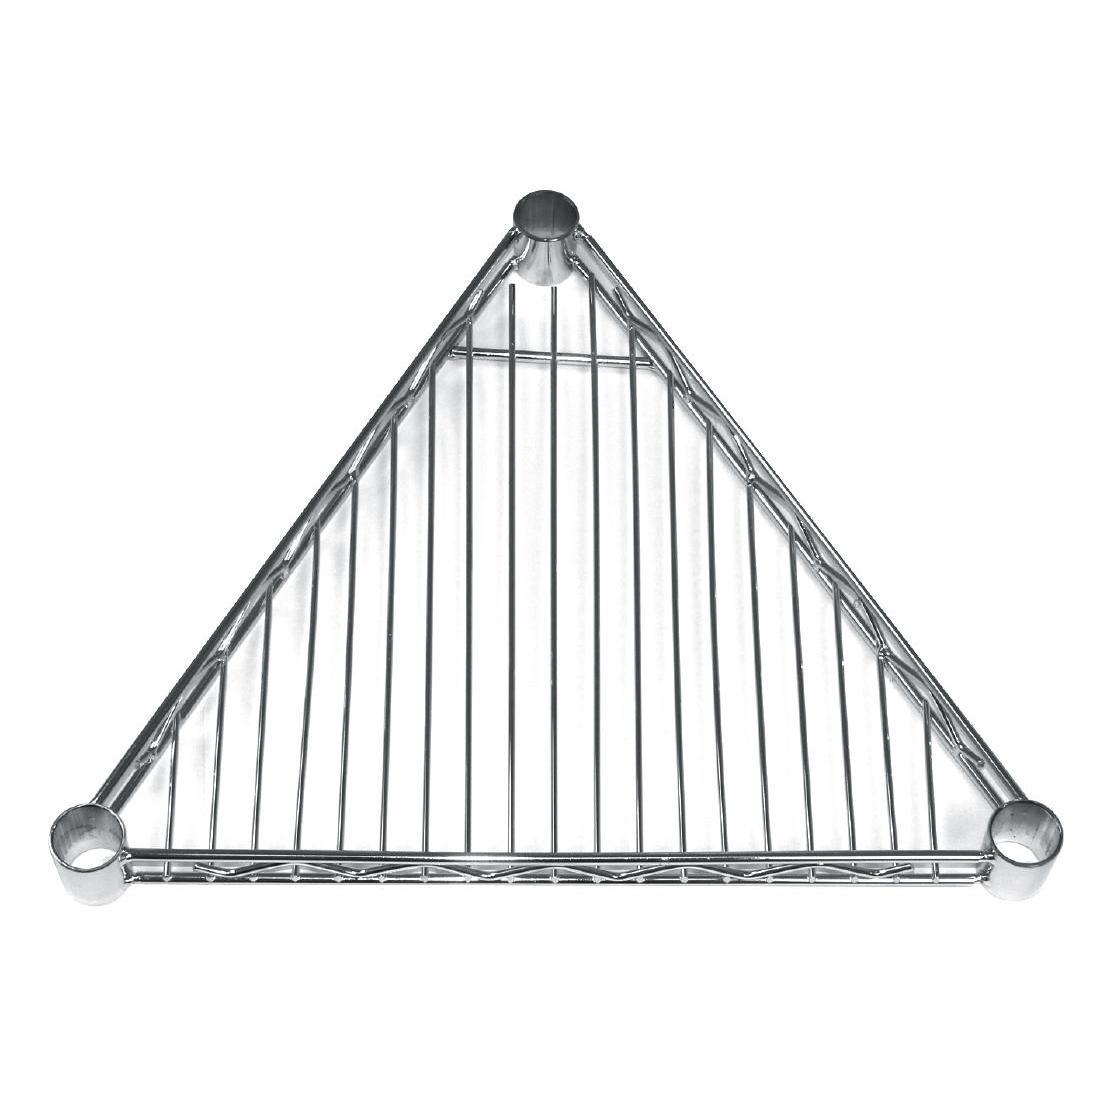 GF982 - Triangular Shelf for Vogue Wire Shelving 457mm - Pack of 4 - GF982